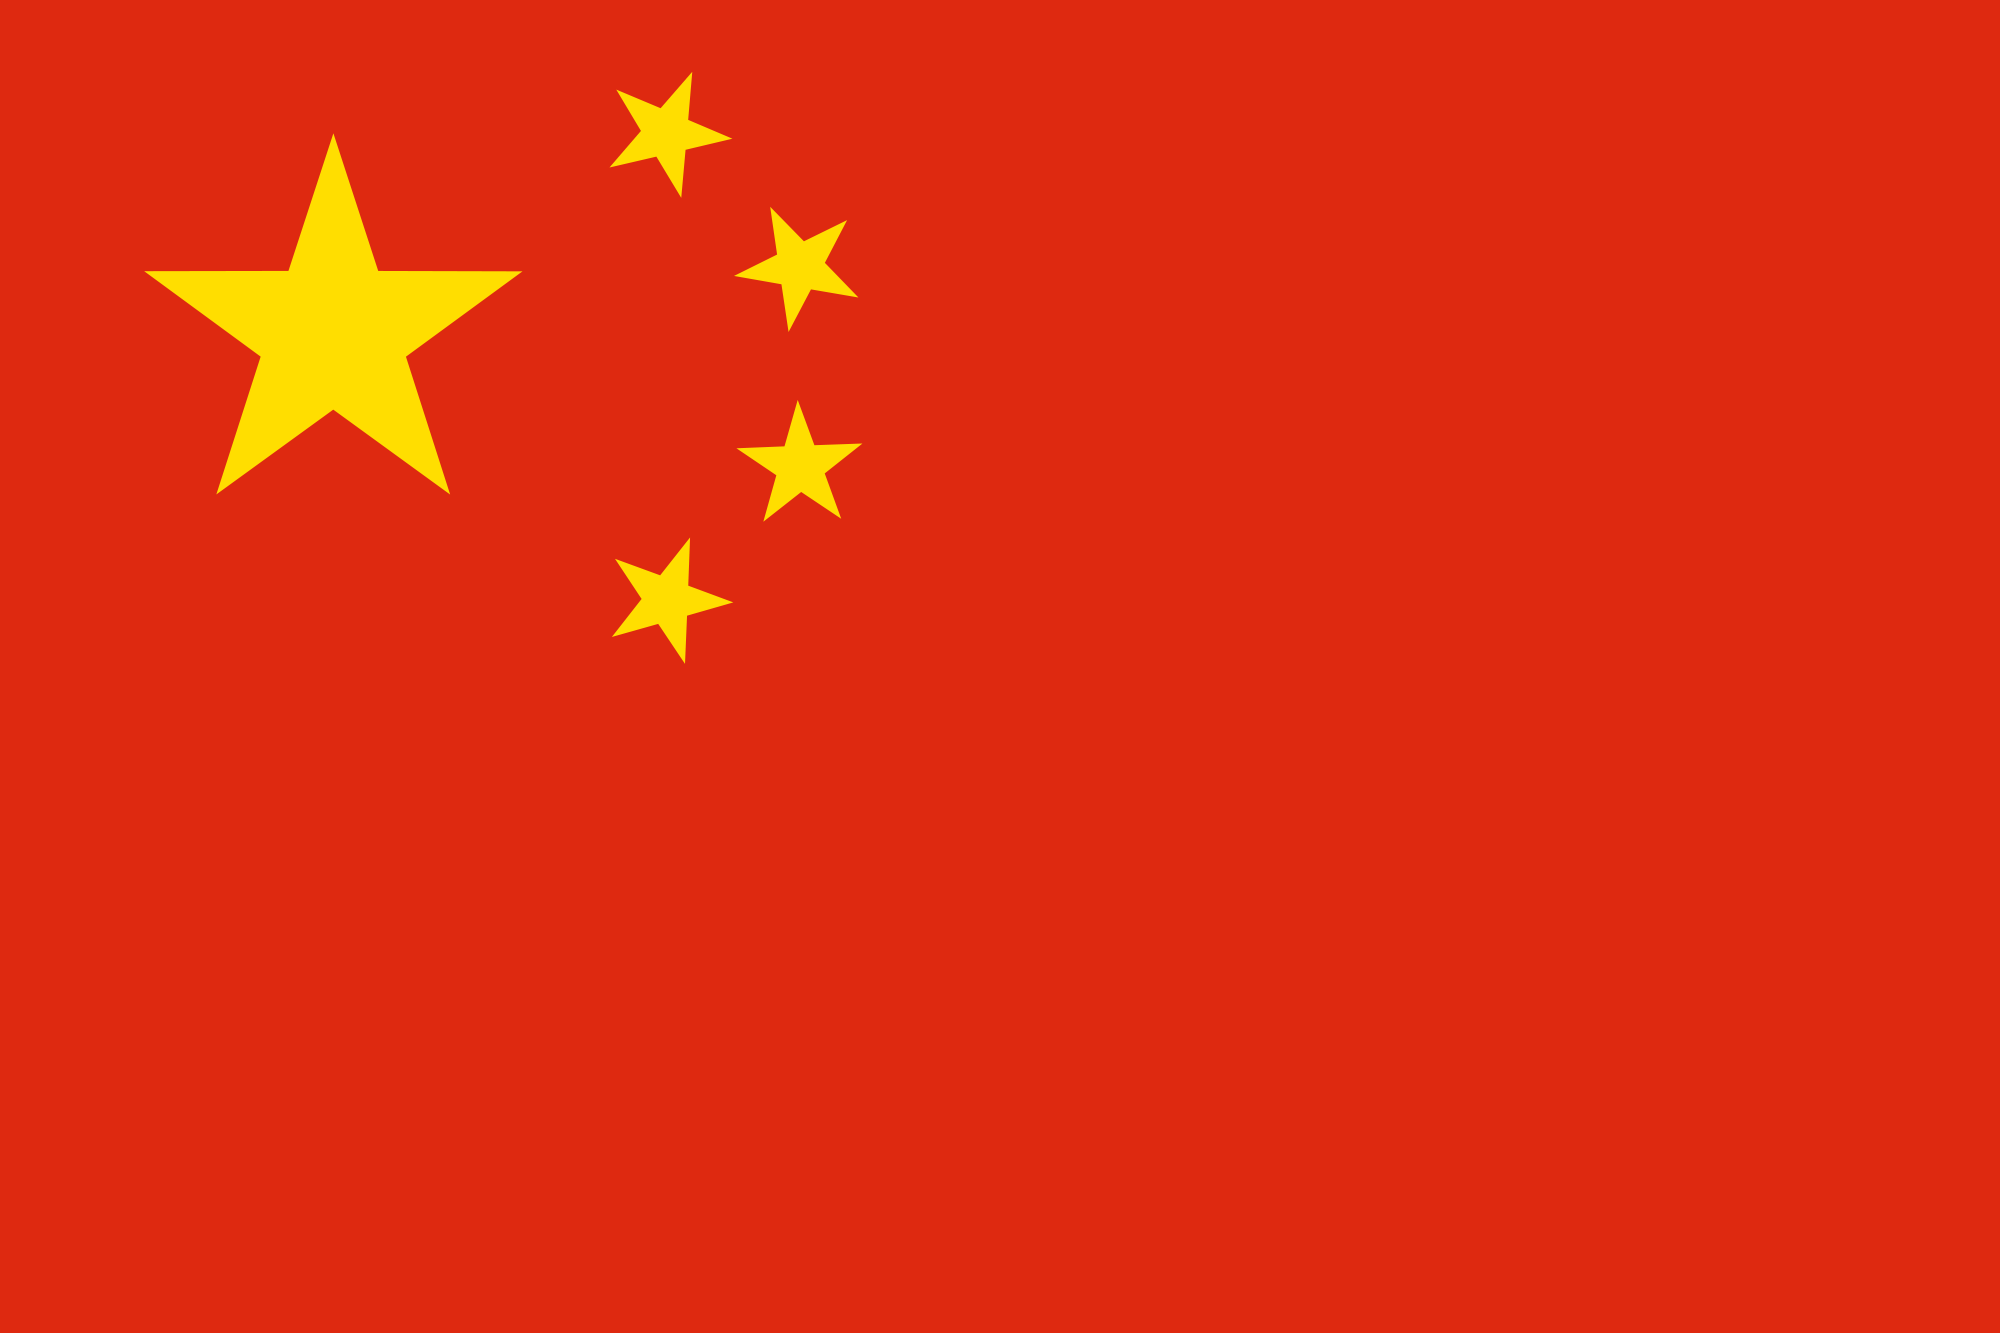 File:Flag of China.png - China PNG